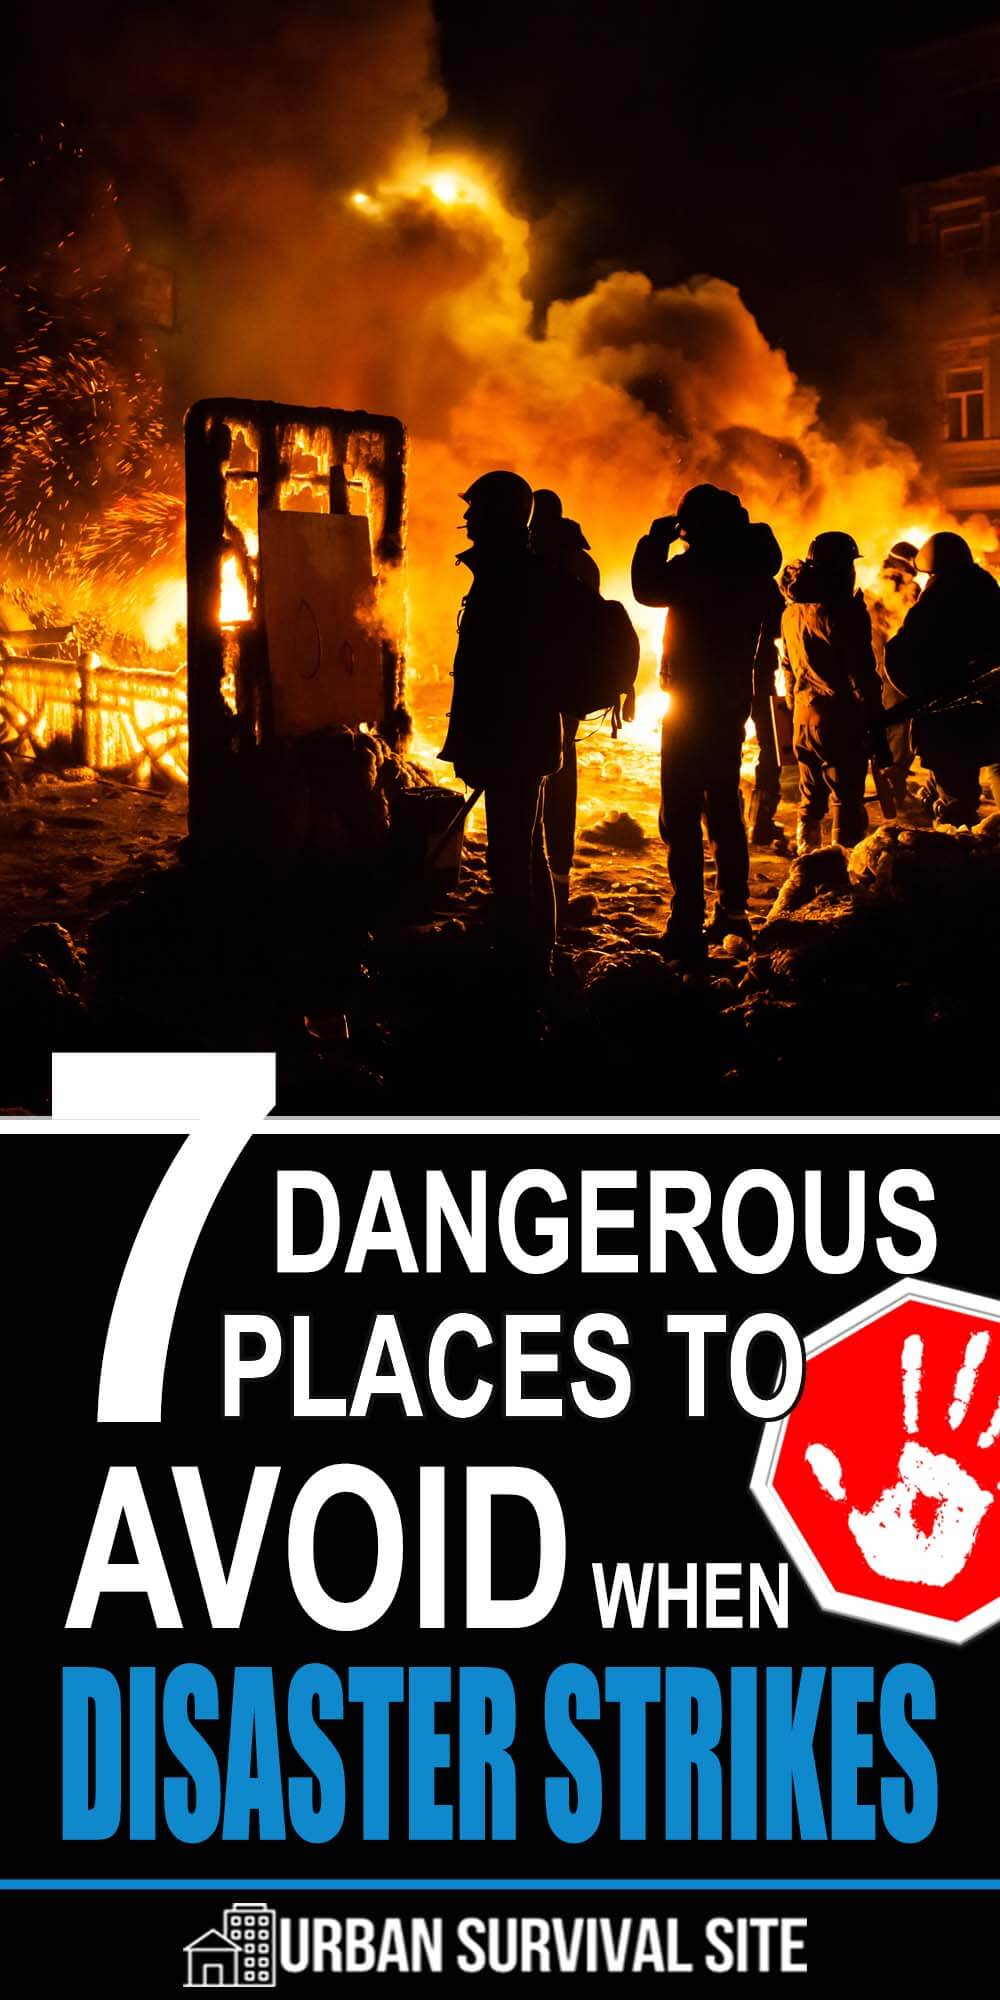 7 Dangerous Places to Avoid When Disaster Strikes